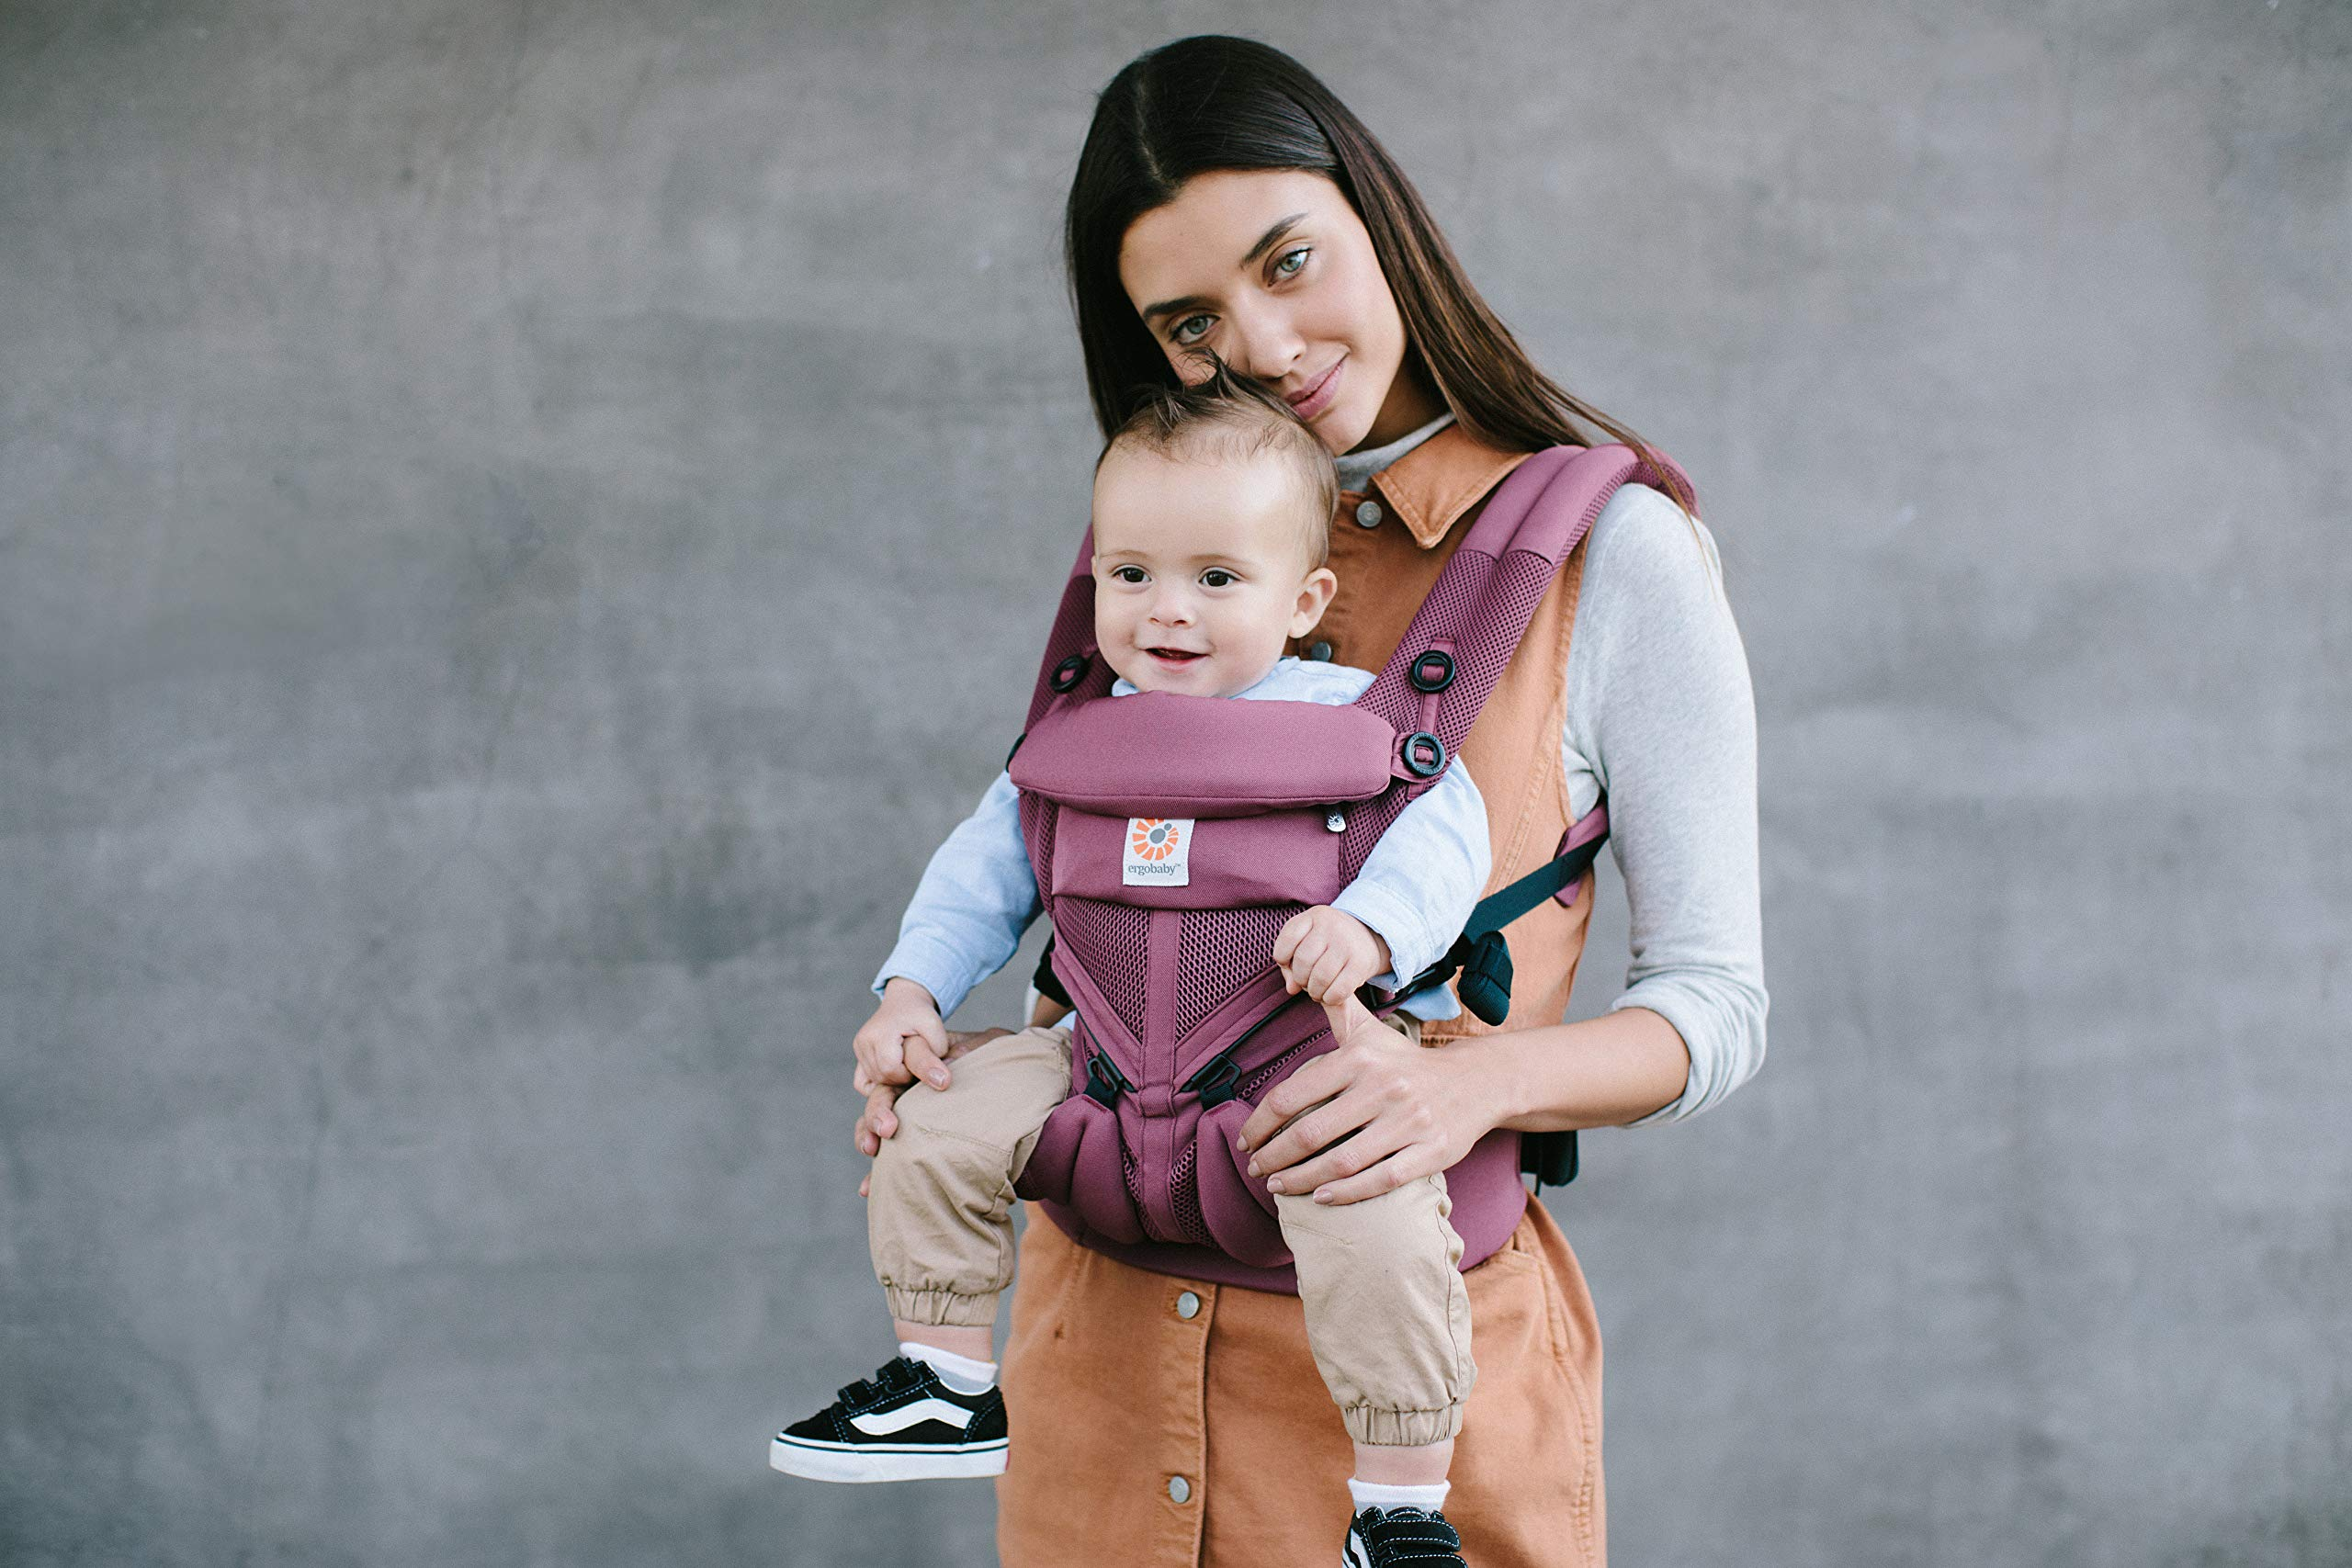 Ergobaby Baby Carrier for Newborn to Toddler, 4-Position Omni 360 Cool Air Plum, Breathable Ergonomic Child Carrier & Backpack Ergobaby BABY CARRIER FOR NEWBORN - Adapts to your growing baby from birth to toddler (7-45lbs). 4 carry positions: front-inward, back, hip, and front-outward. A Baby hood for sun protection (UPF 50+) & privacy for sleeping or breastfeeding is included. COMFORT - Exceptional lower back comfort with padded lumbar support waist belt & extra padded shoulder straps with the option to wear 2 ways: crossed or backpack style. Waist belt can be worn high or low to maximize comfort. COOL & BREATHABLE - Our Cool Air Mesh baby carriers are made with soft and durable mesh fabric that provides our renowned ergonomic support for baby while allowing for ultimate breathability and airflow 8